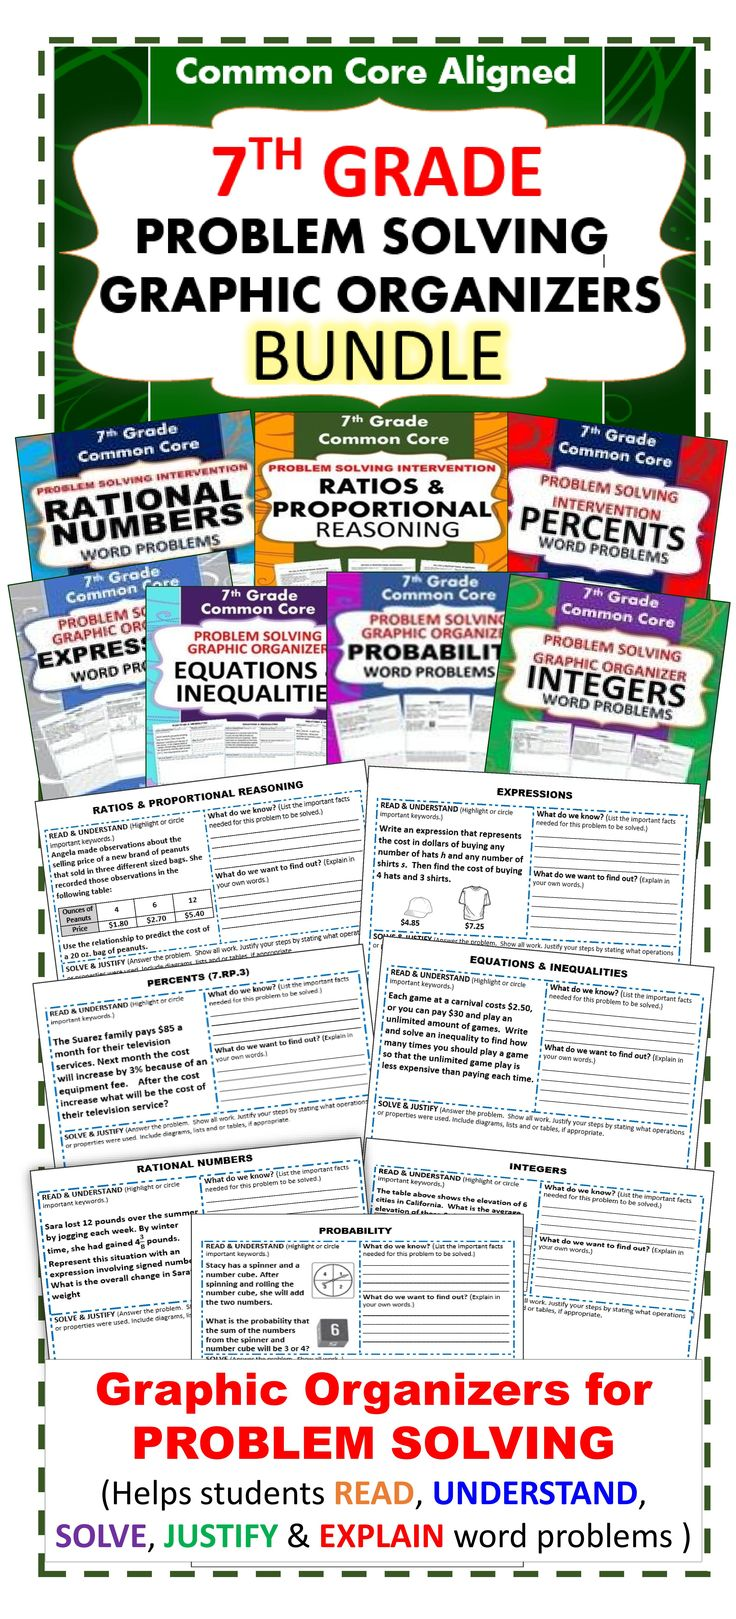 This PROBLEM SOLVING BUNDLE resource includes 7 sets (69 problems) of 7th Grade real-world COMMON CORE WORD PROBLEMS that students must solve and explain using problem-solving strategies. Each GRAPHIC ORGANIZER presents students with a word problem  that they are prompted to READ, UNDERSTAND, SOLVE, JUSTIFY their work and EXPLAIN their solution. Topics Covered: ✔ Ratios & Proportional Reasoning  ✔ Percents  ✔ Integers  ✔ Rational Numbers  ✔ Expressions   ✔ Equations & Inequalities  ✔ Probability: This PROBLEM SOLVING BUNDLE resource includes 7 sets (69 problems) of 7th Grade real-world COMMON CORE WORD PROBLEMS that students must solve and explain using problem-solving strategies. Each GRAPHIC ORGANIZER presents students with a word problem  that they are prompted to READ, UNDERSTAND, SOLVE, JUSTIFY their work and EXPLAIN their solution. Topics Covered: ✔ Ratios & Proportional Reasoning  ✔ Percents  ✔ Integers  ✔ Rational Numbers  ✔ Expressions   ✔ Equations & Inequalities  ✔ Probability